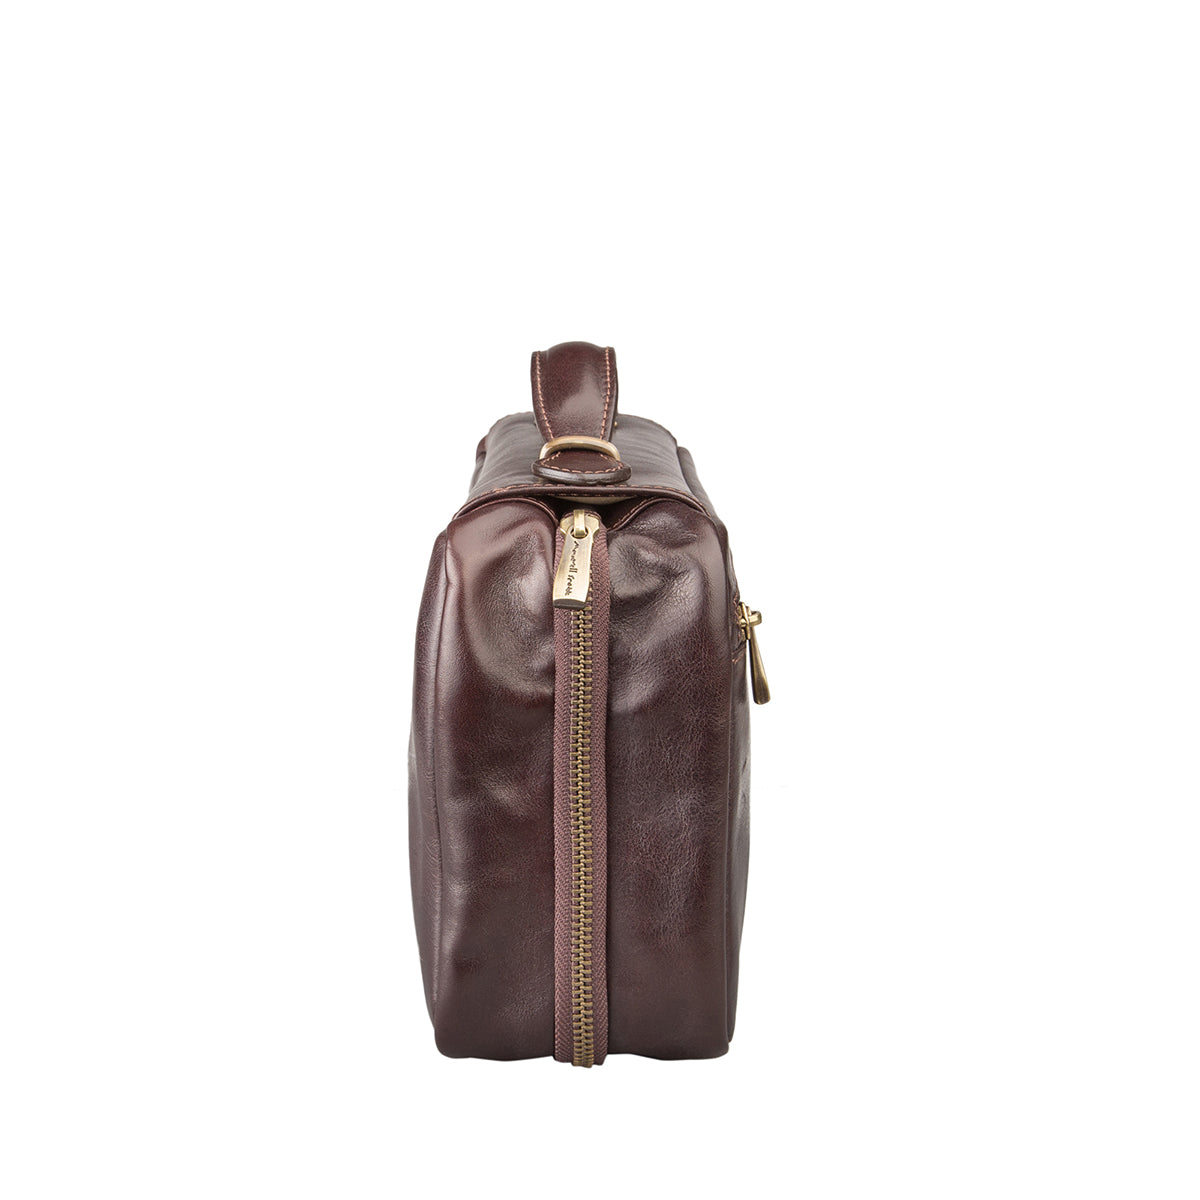 Image 3 of the 'Cascina' Chocolate Veg-Tanned Leather Makeup Case